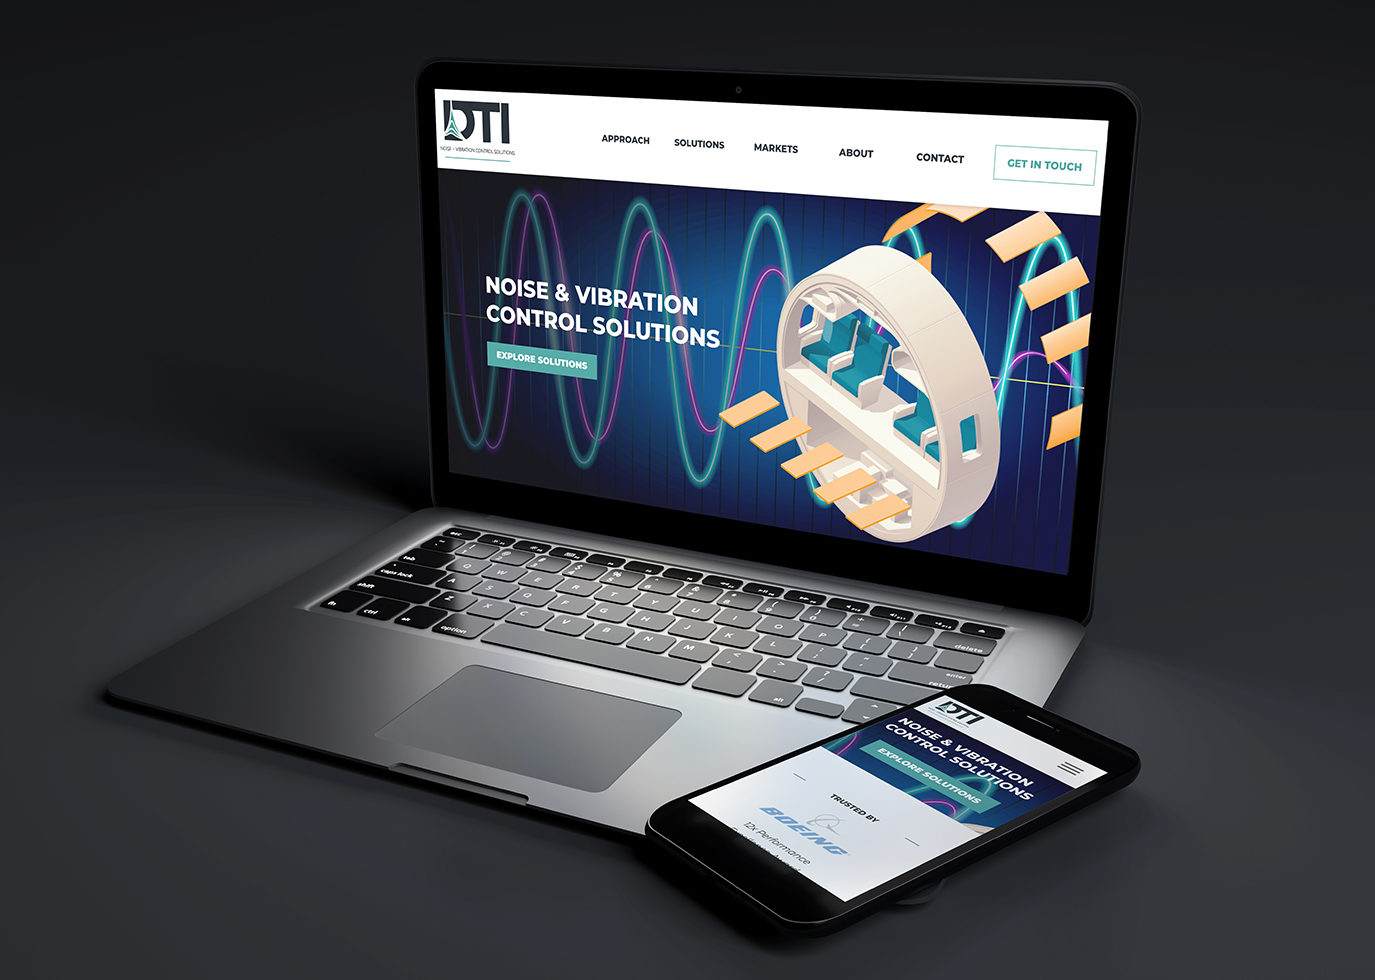 DTI Website on laptop and phone